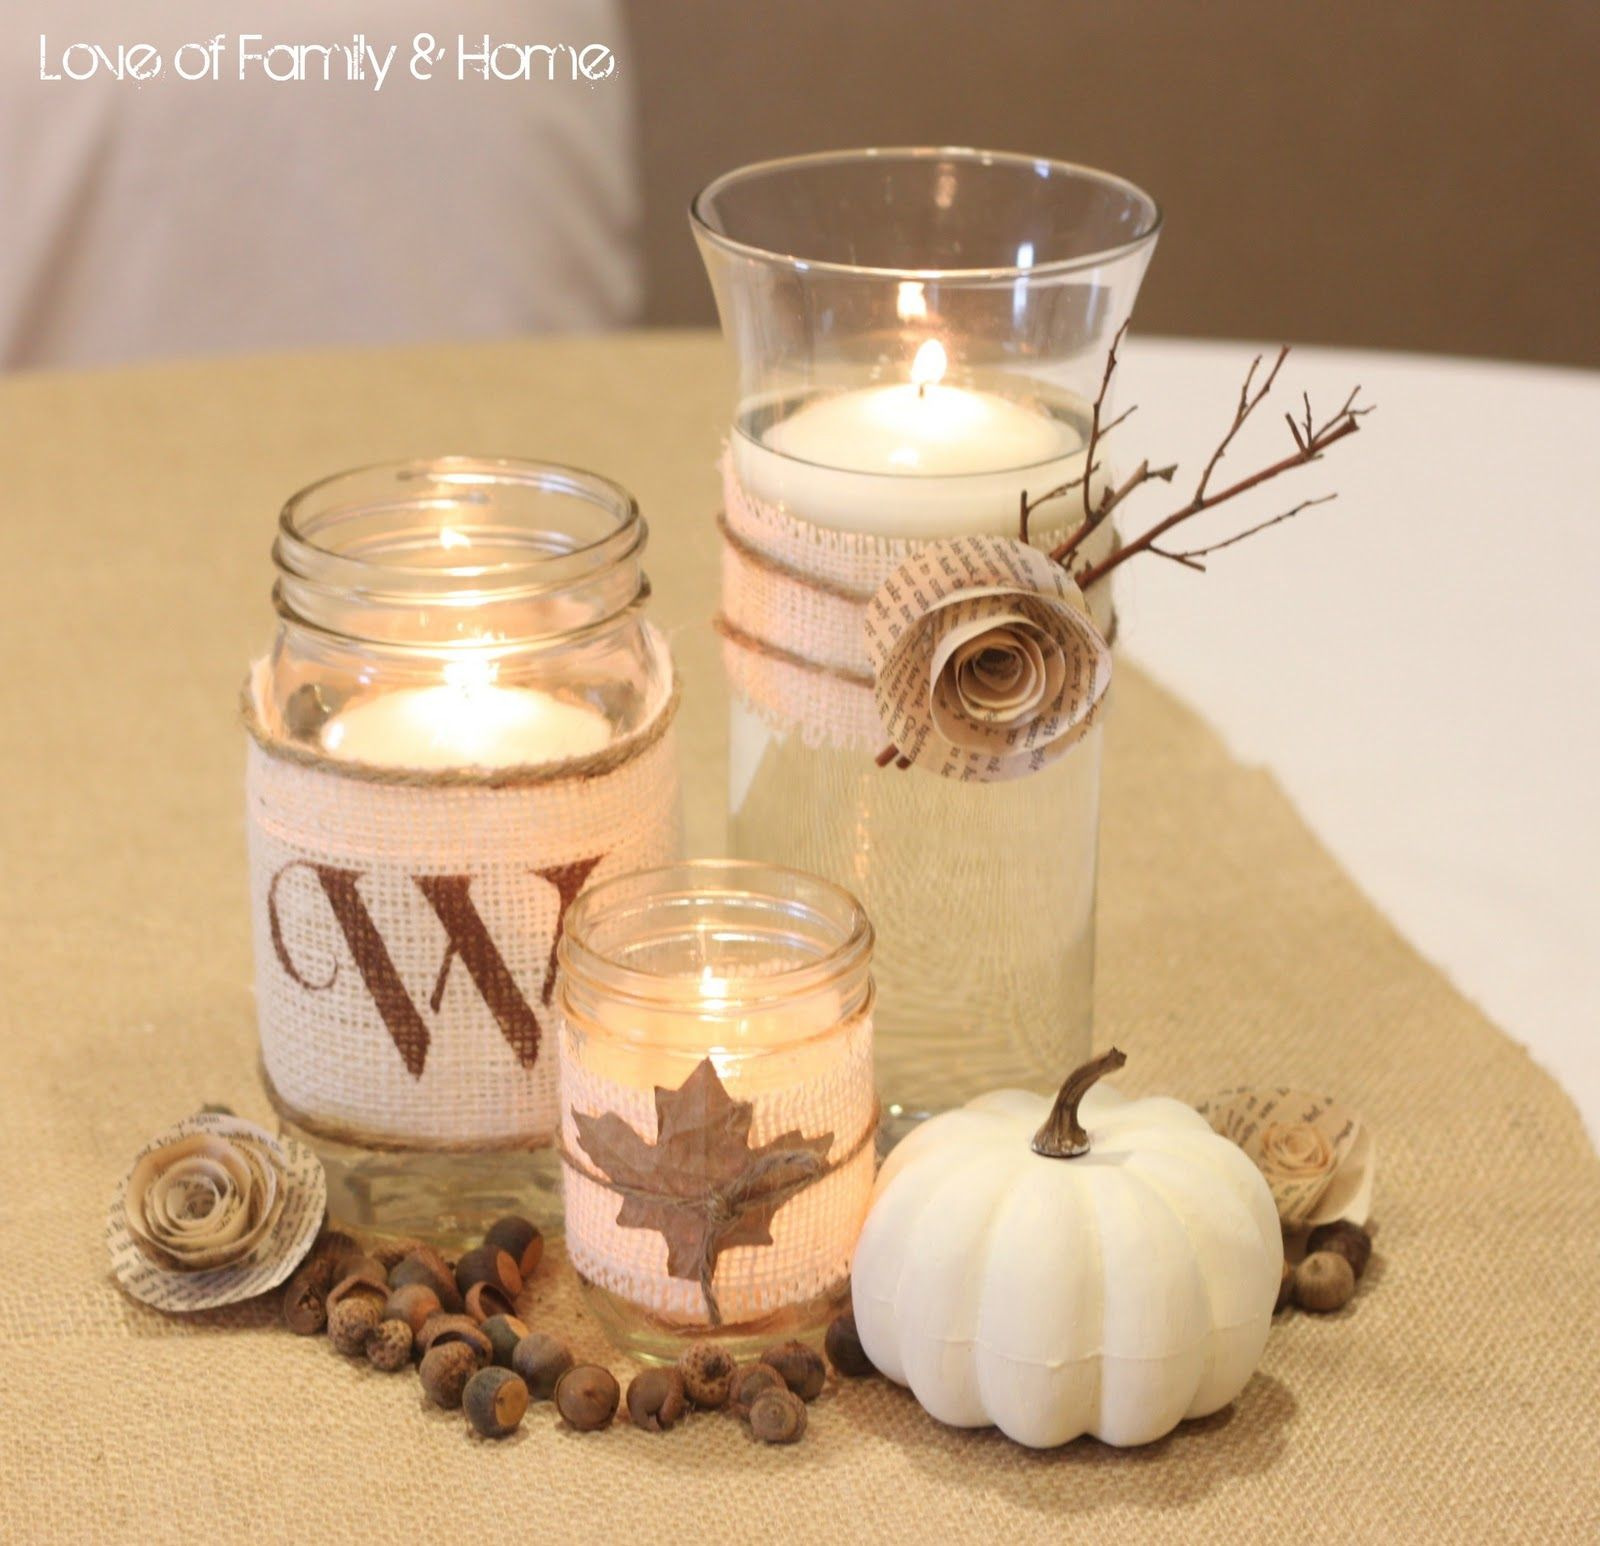 fall crafts for wedding shower | The other tables were decorated with a grouping of glass jars ...